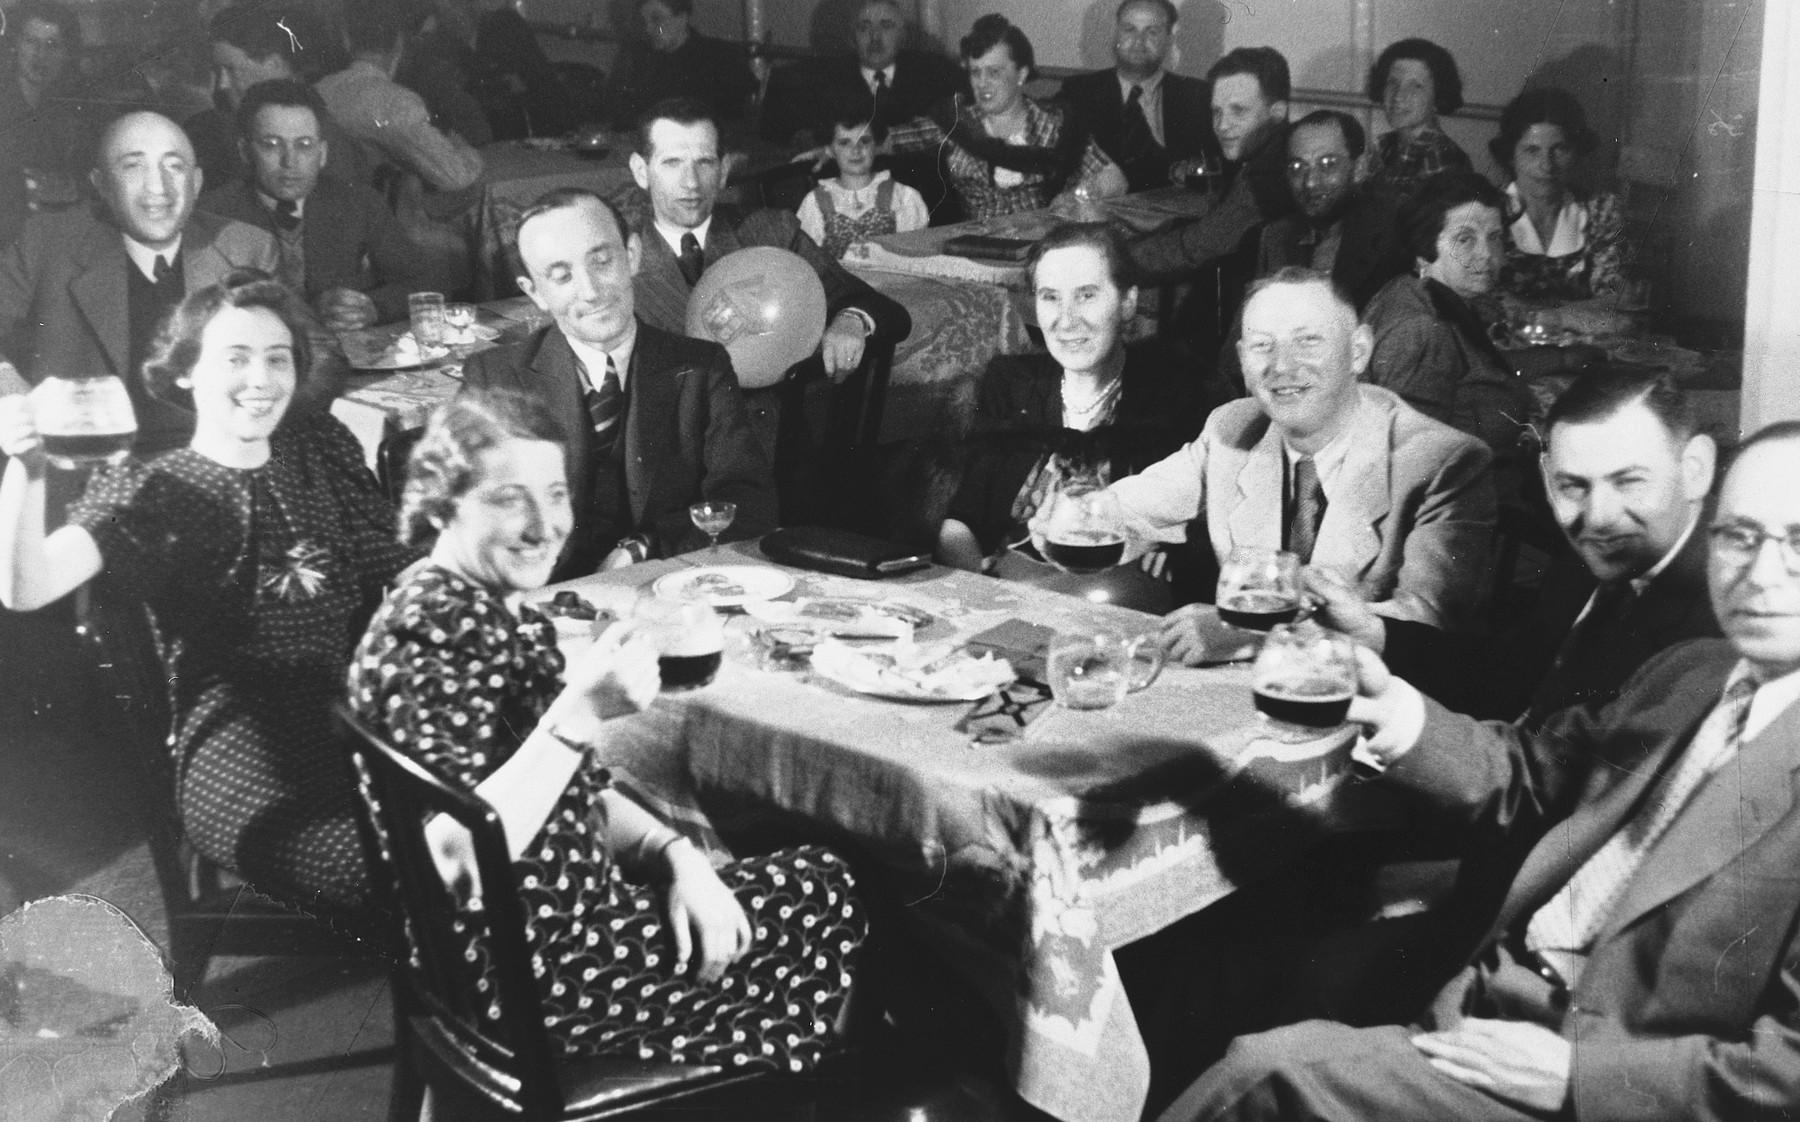 Jewish refugees on board the St. Louis raise their glasses in a toast.  Pictured are Ilse Marcus (front center), her husband Kurt Marcus (second from right) and parents, Berthold and Elfriede Meyer facing her.